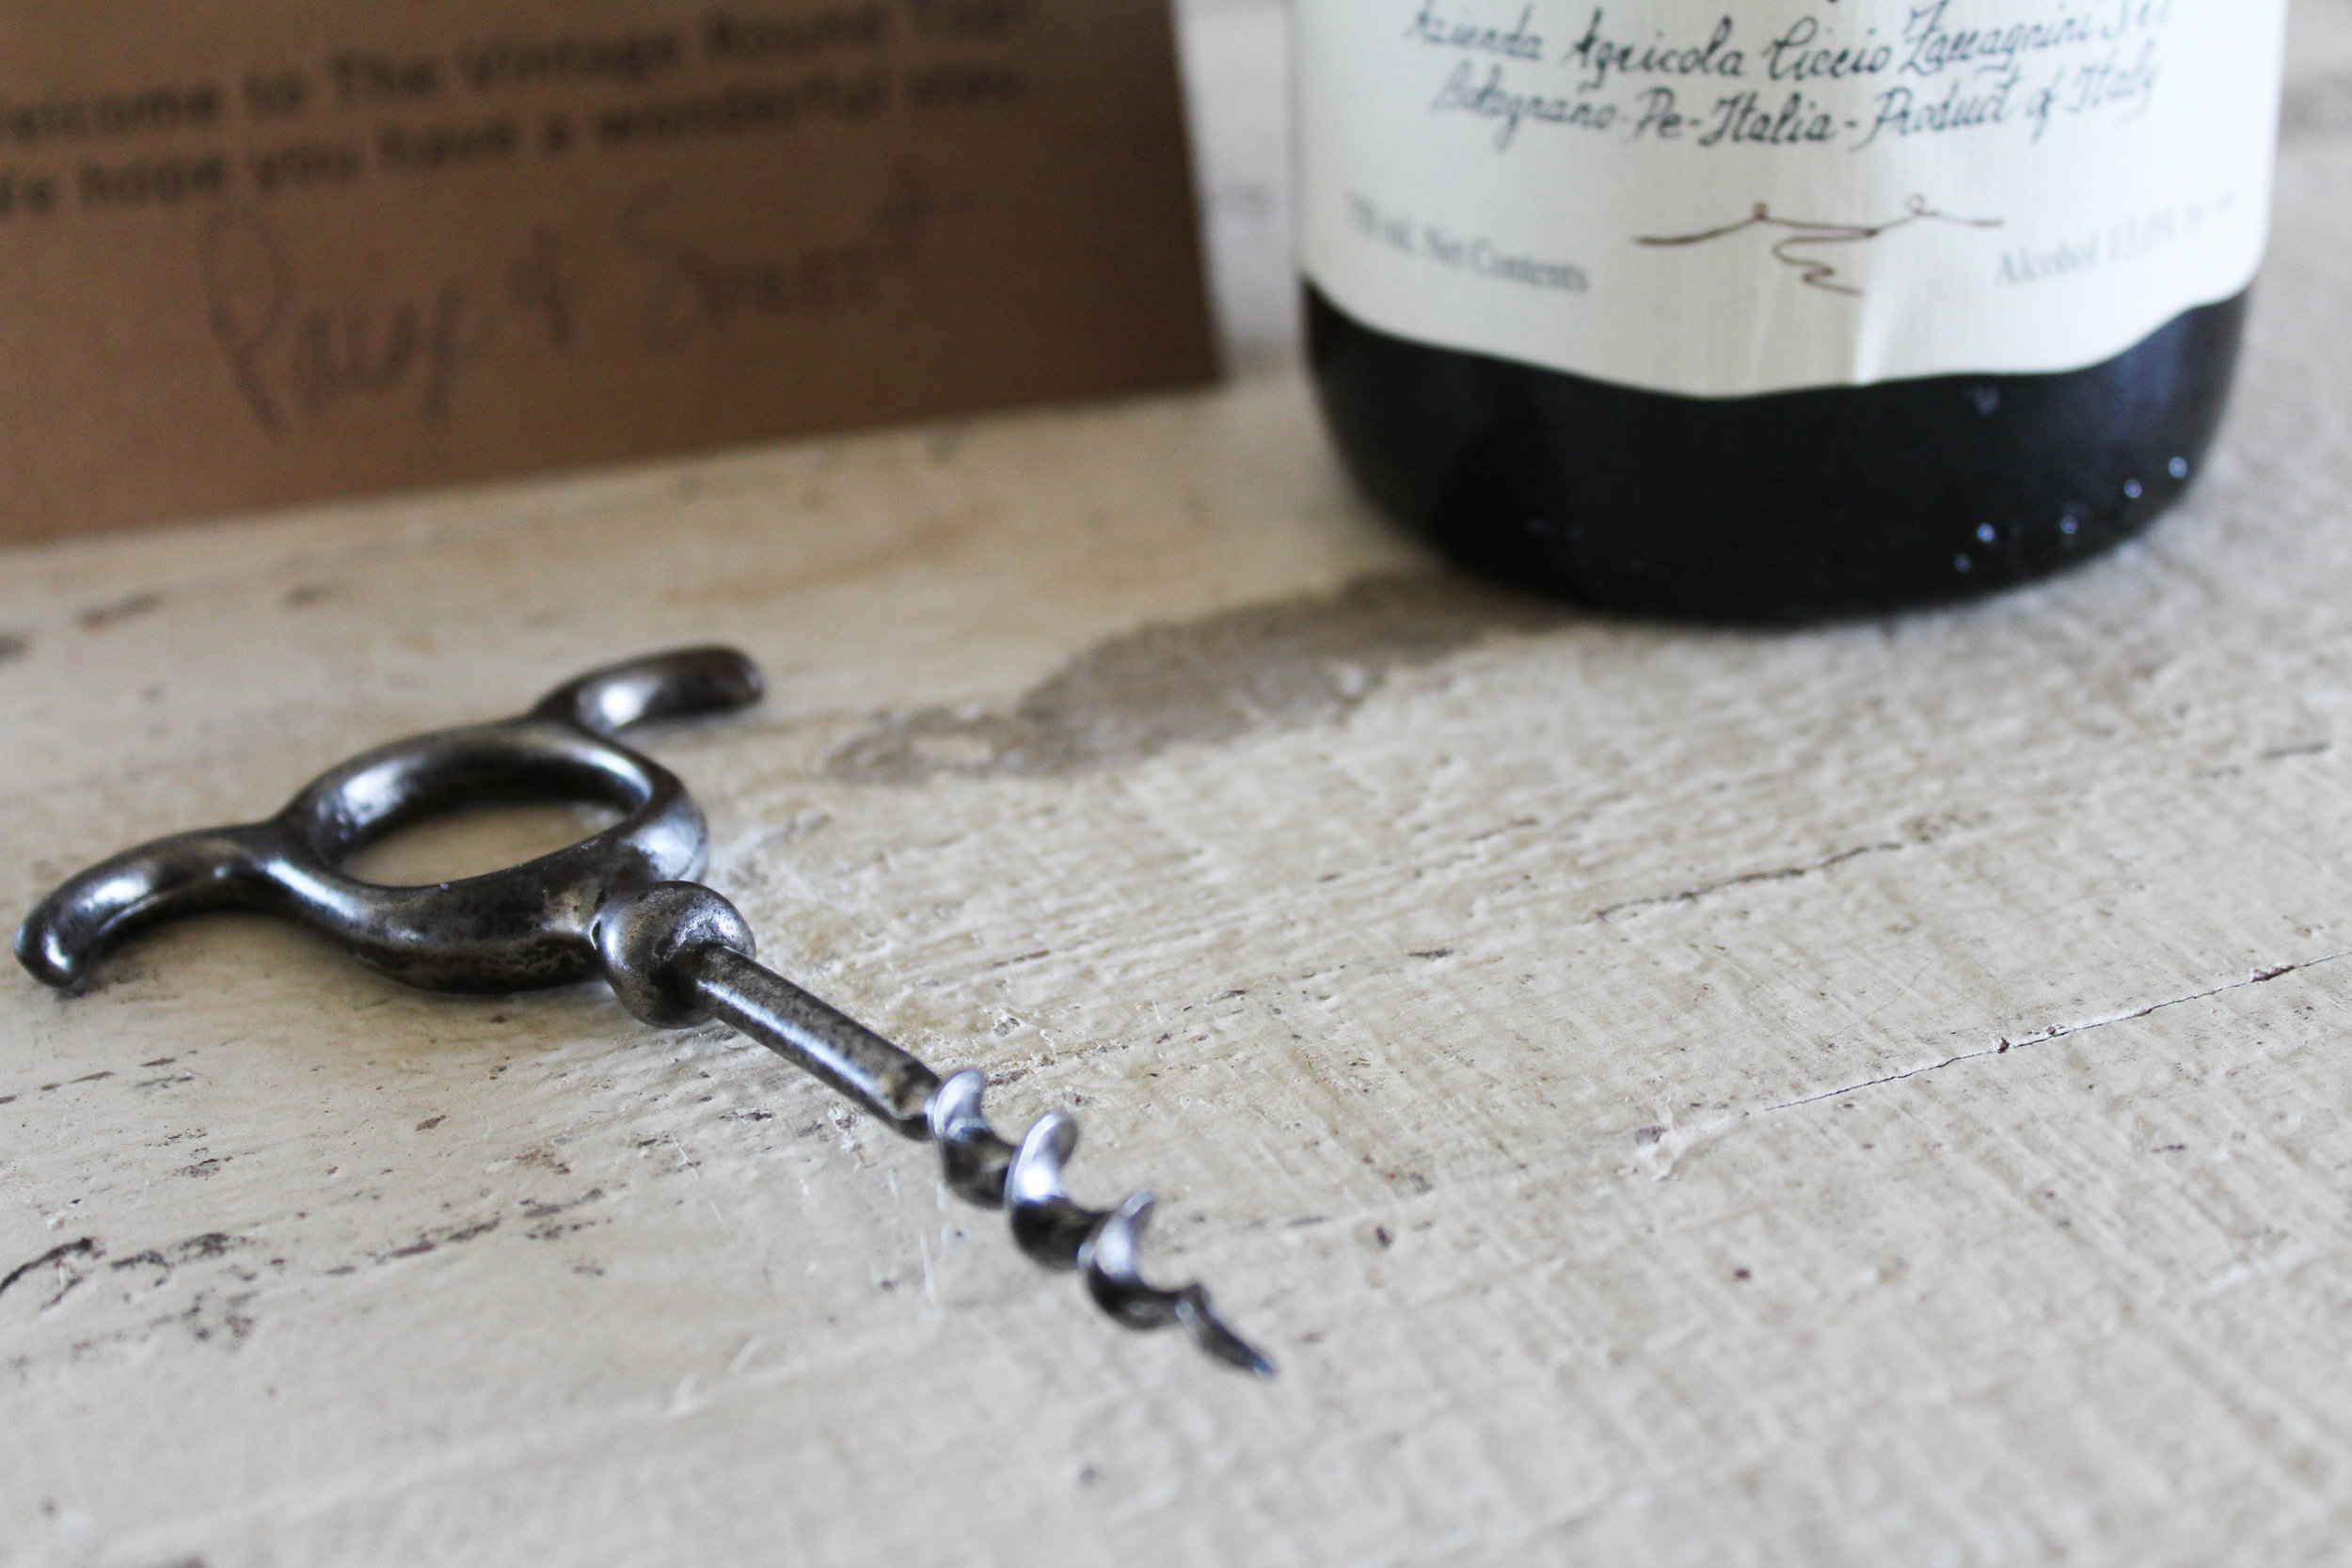 Antique Corkscrew - The Vintage Round Top | $22